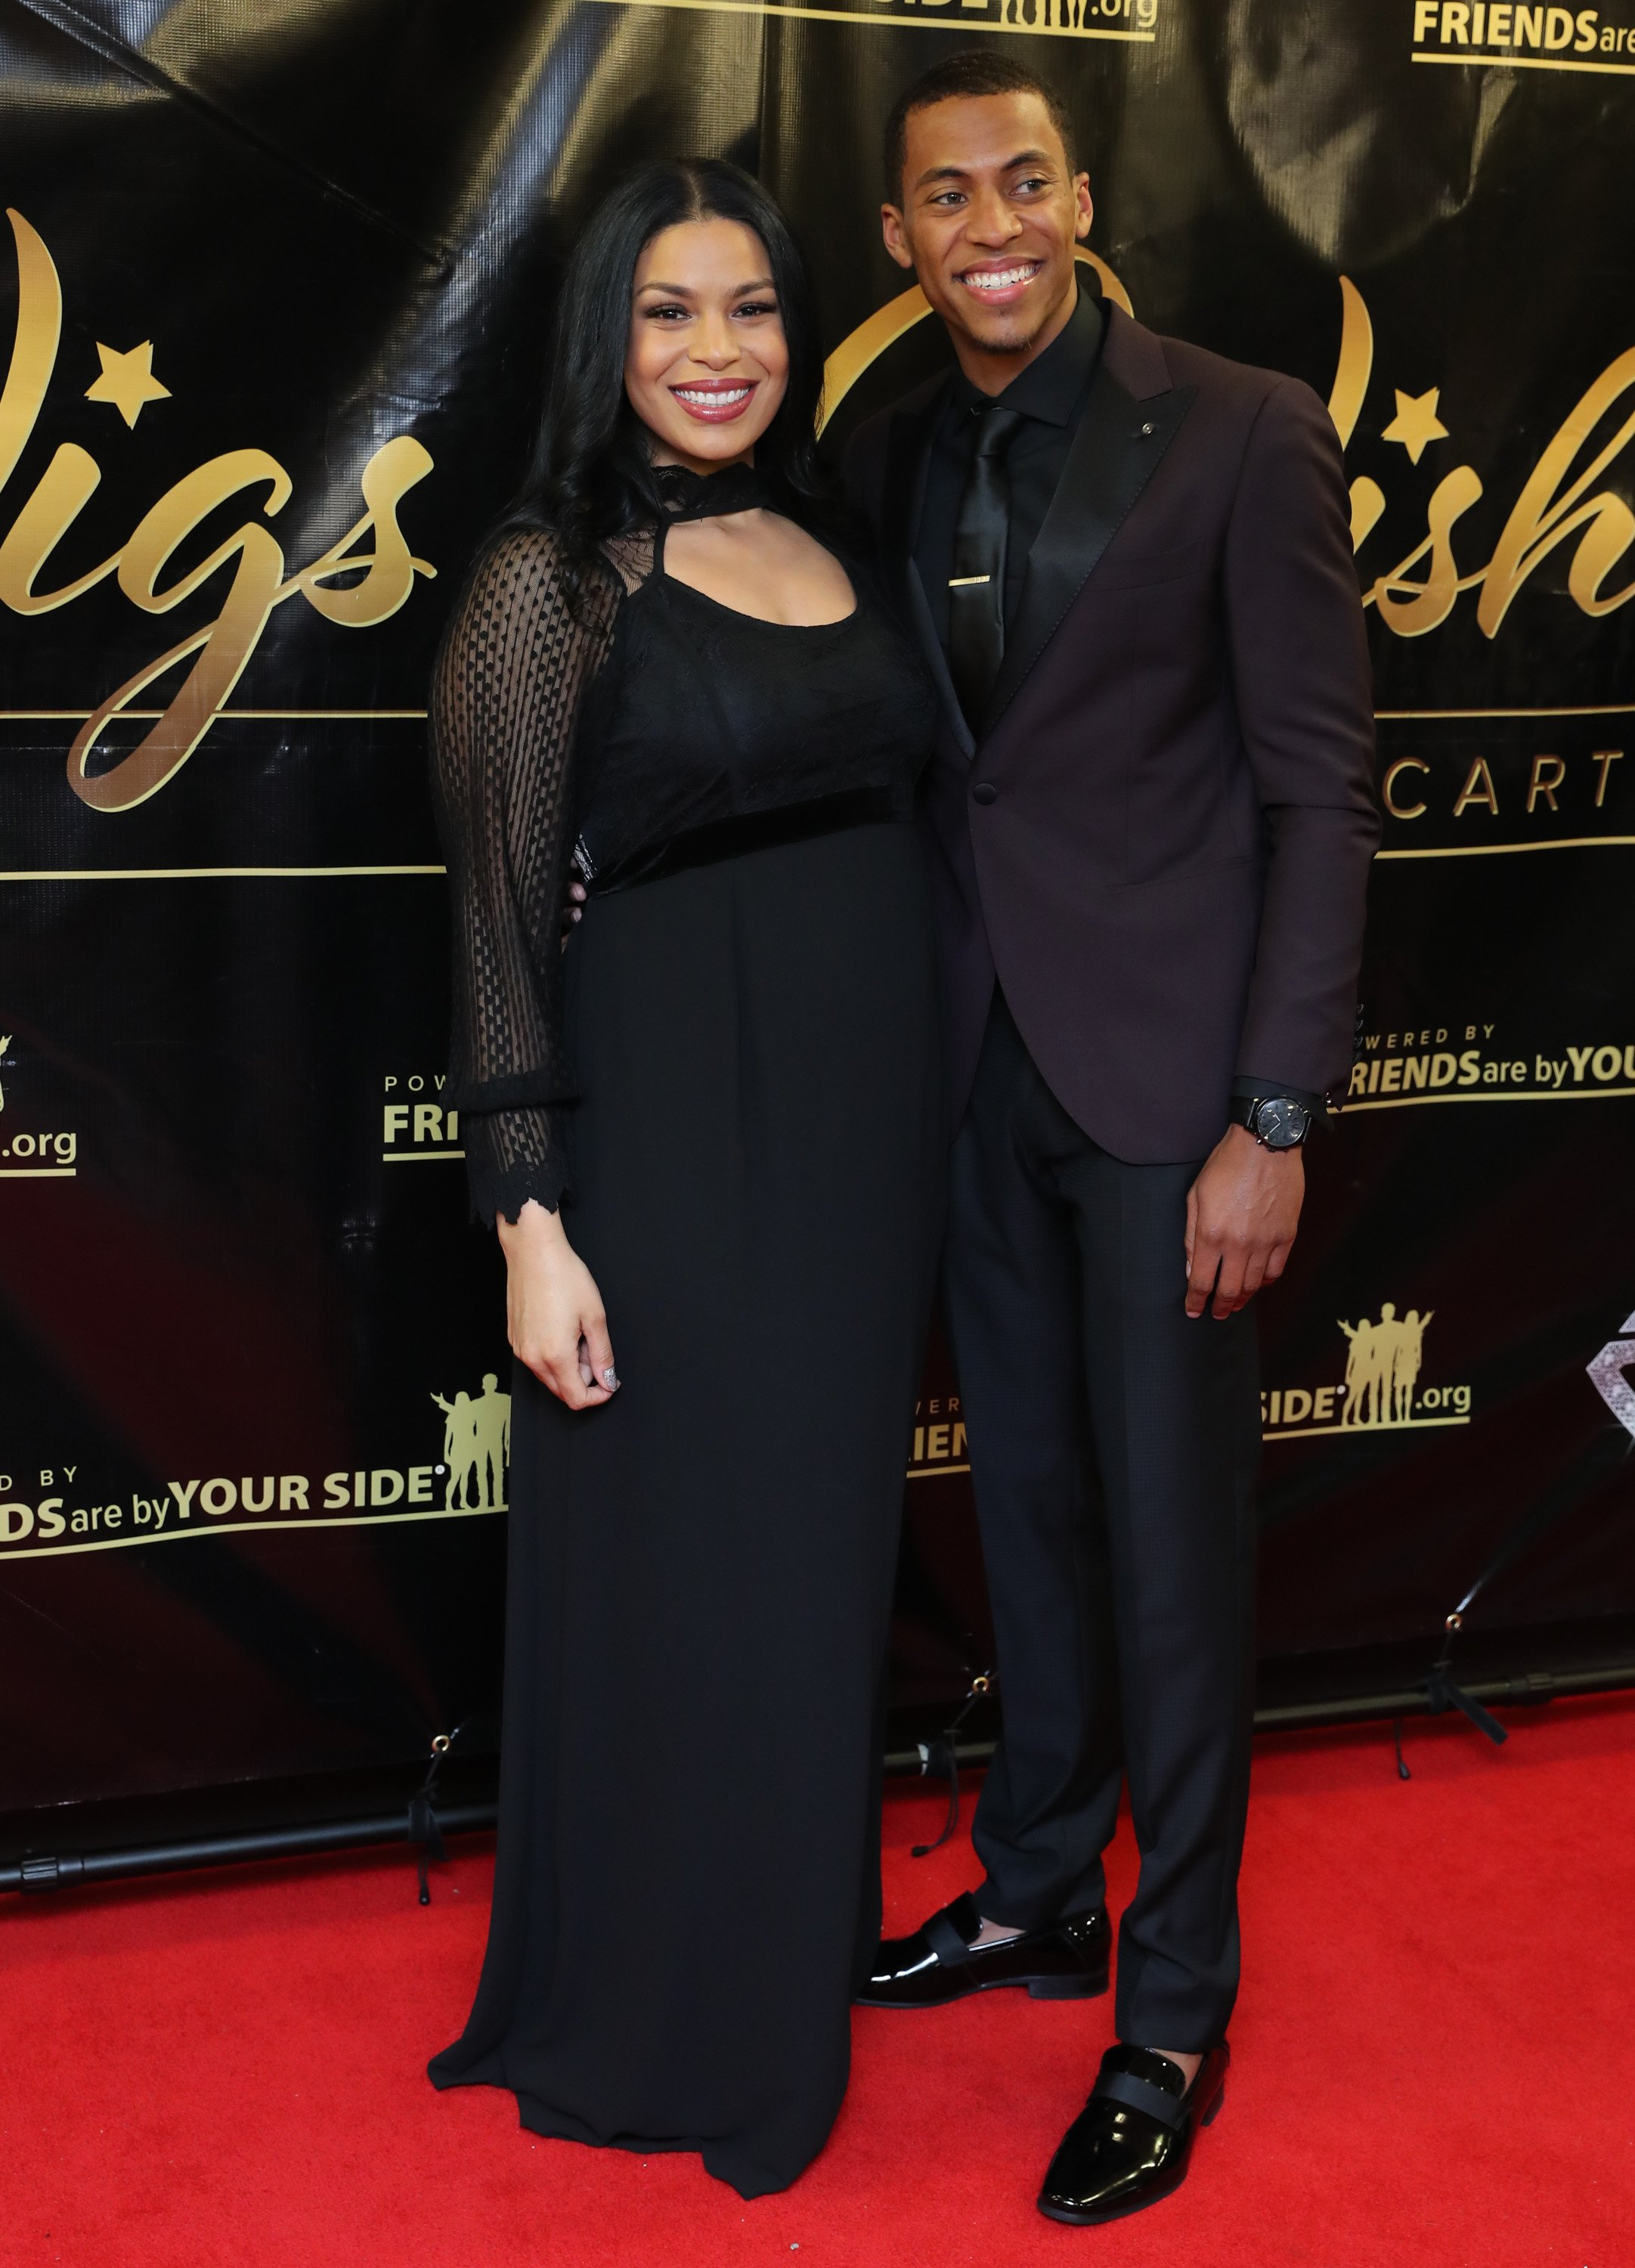 Jordin Sparks & Dana Isaiah at the 2017 One Night With The Stars on Dec. 4, 2017 in New York City | Photo: Getty Images